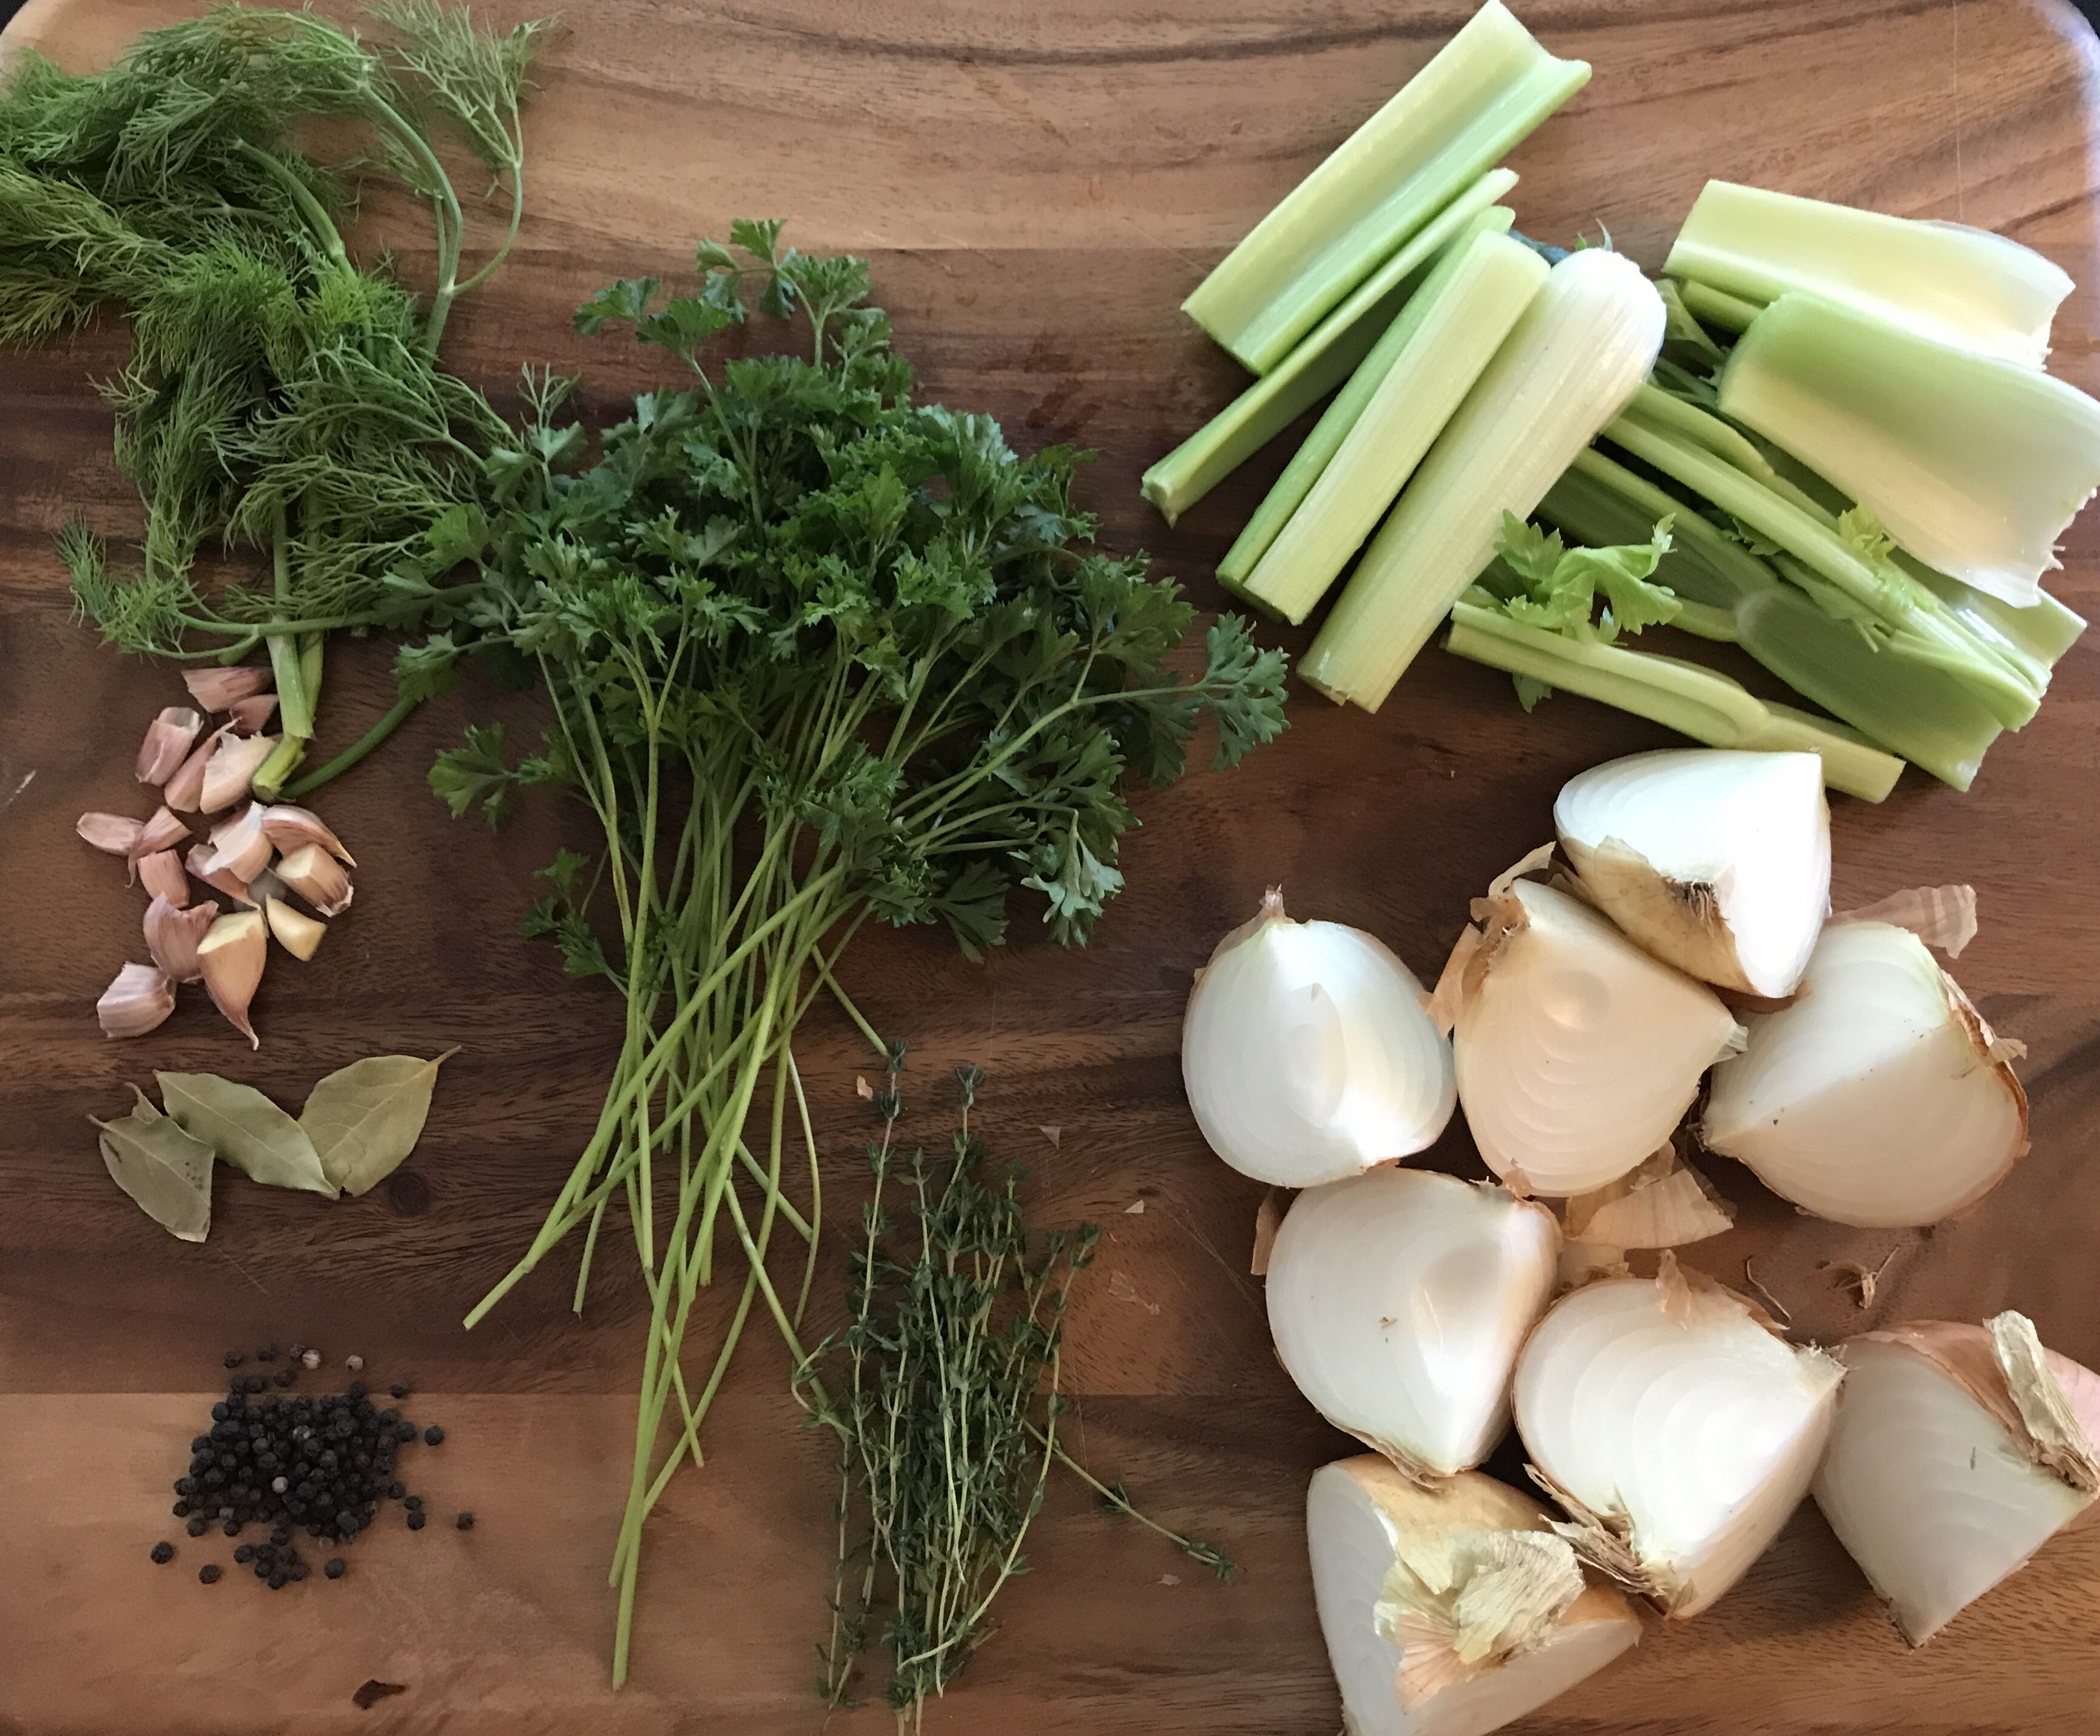 Ingredients for Rich and Golden Homemade Chicken Broth